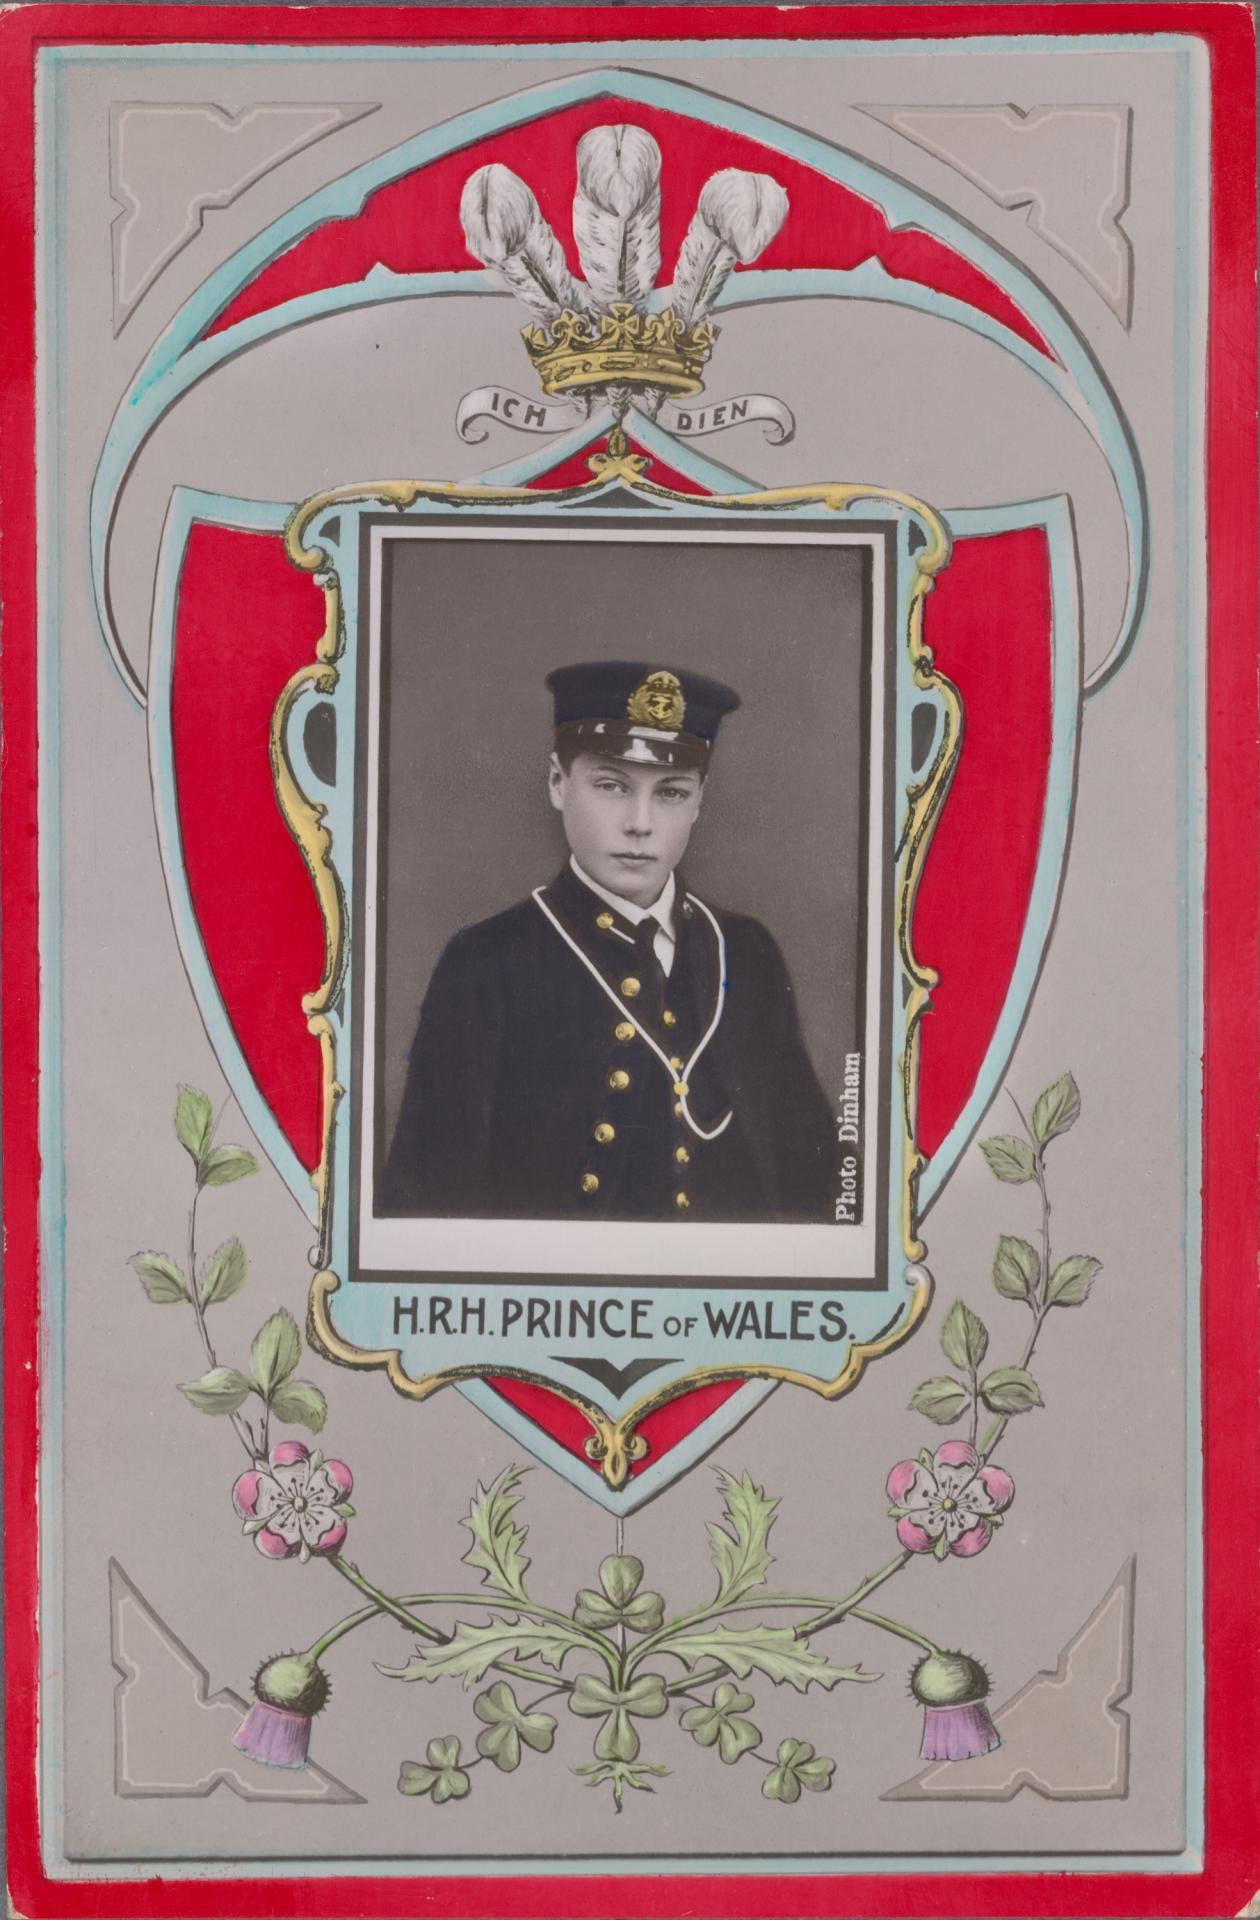 No title (H. R. H. Prince of Wales)